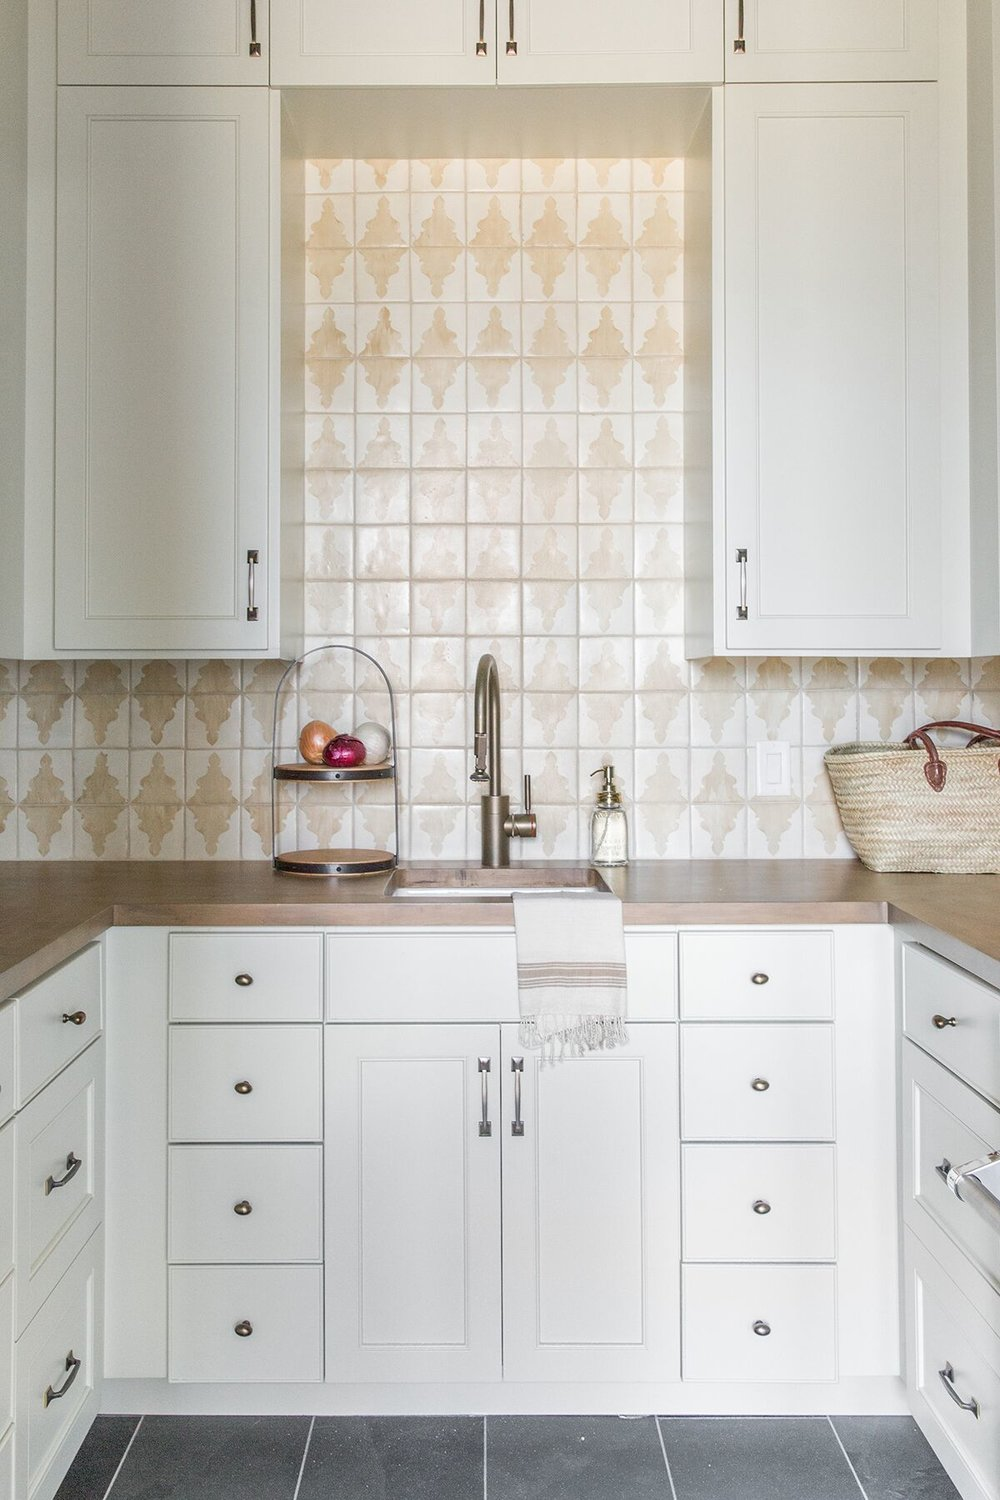 Butlers pantry with with tile and white cabinetry - Studio McGee Design